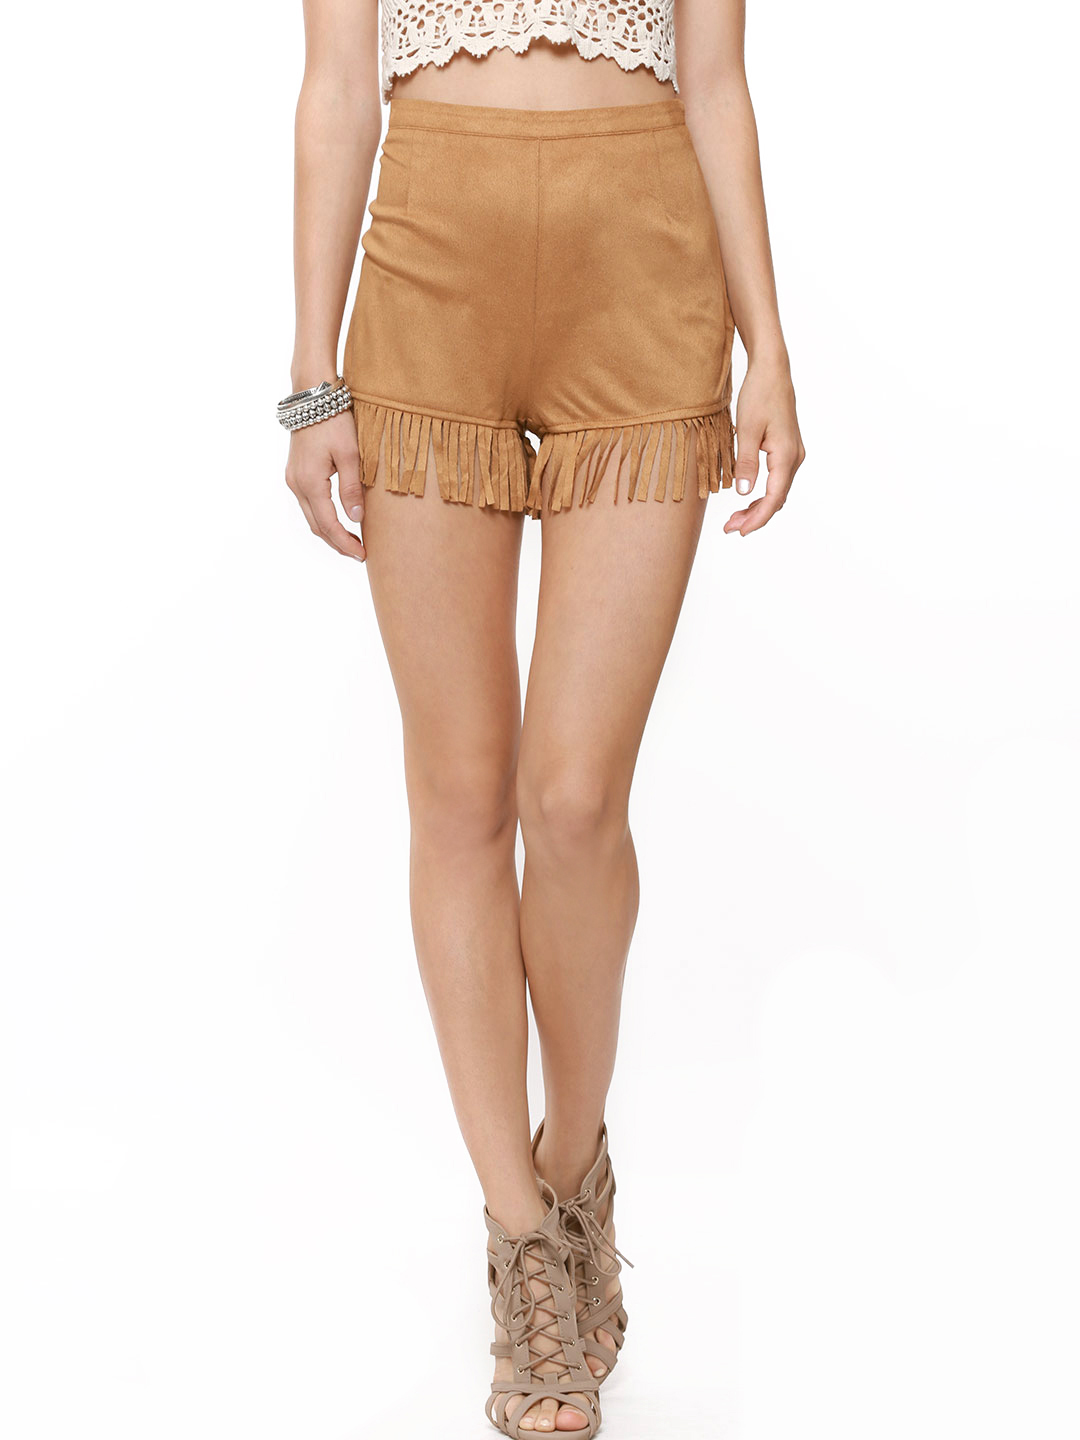 New Look Tan Suedette Fringed Festival Shorts 1